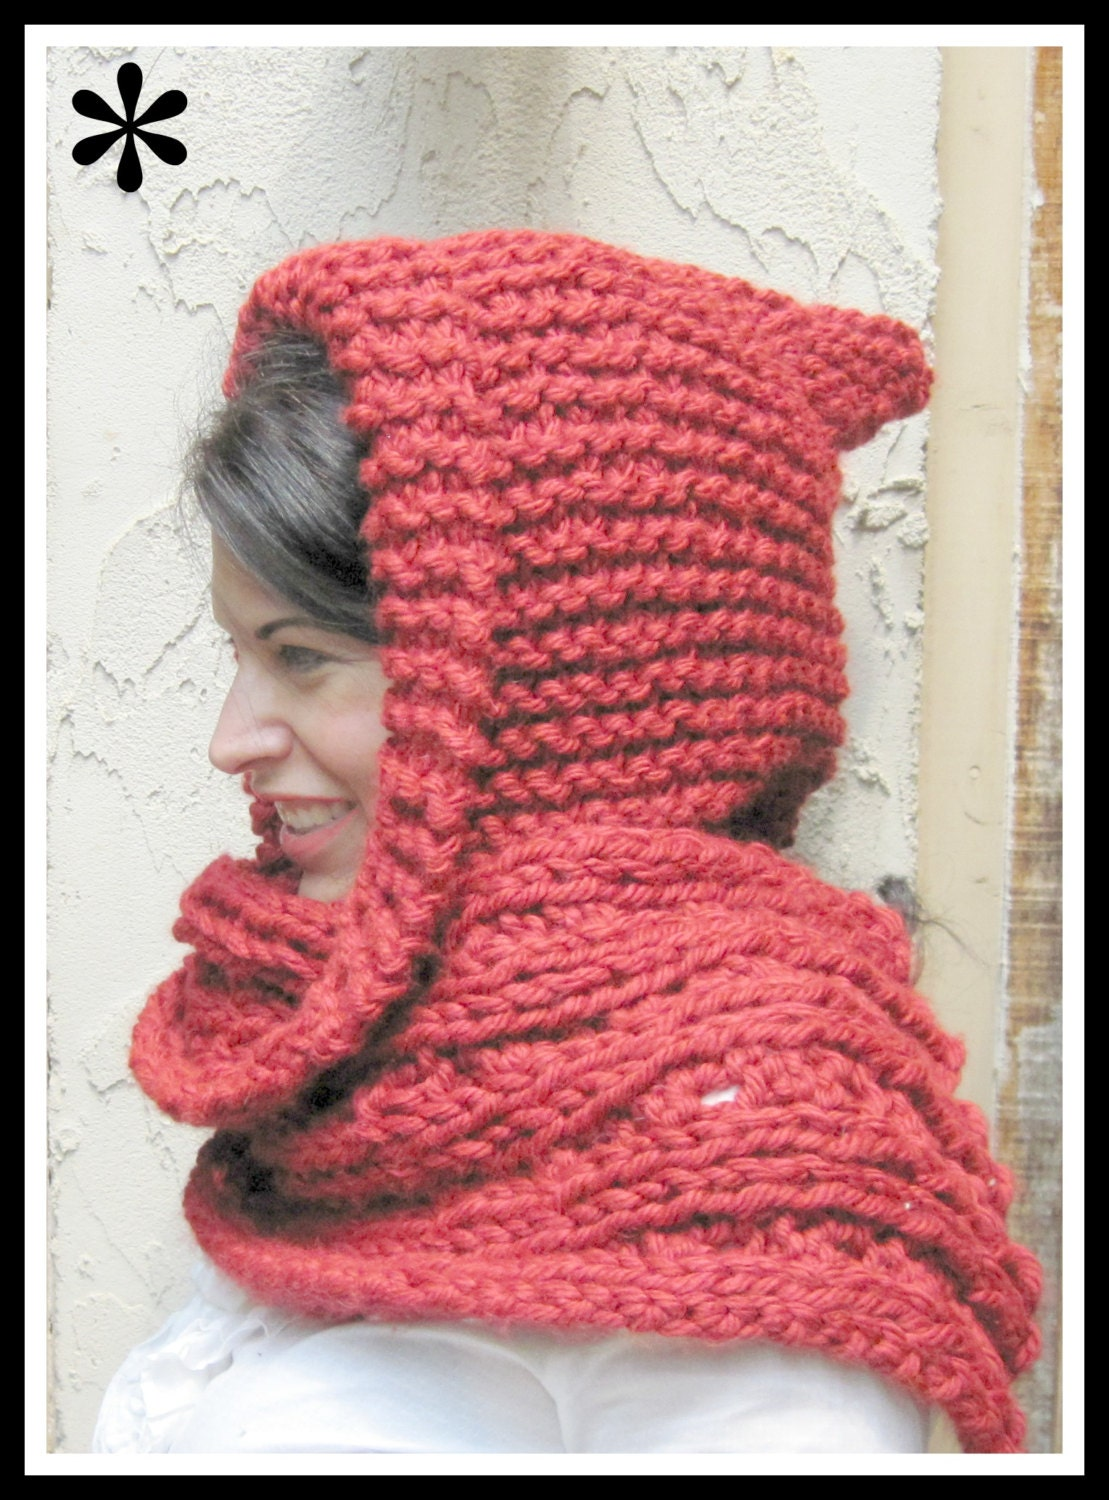 Knitted Scarf Patterns For Bulky Yarn : Red Hooded Scarf in Bulky Yarn Knitting Pattern Adult Size